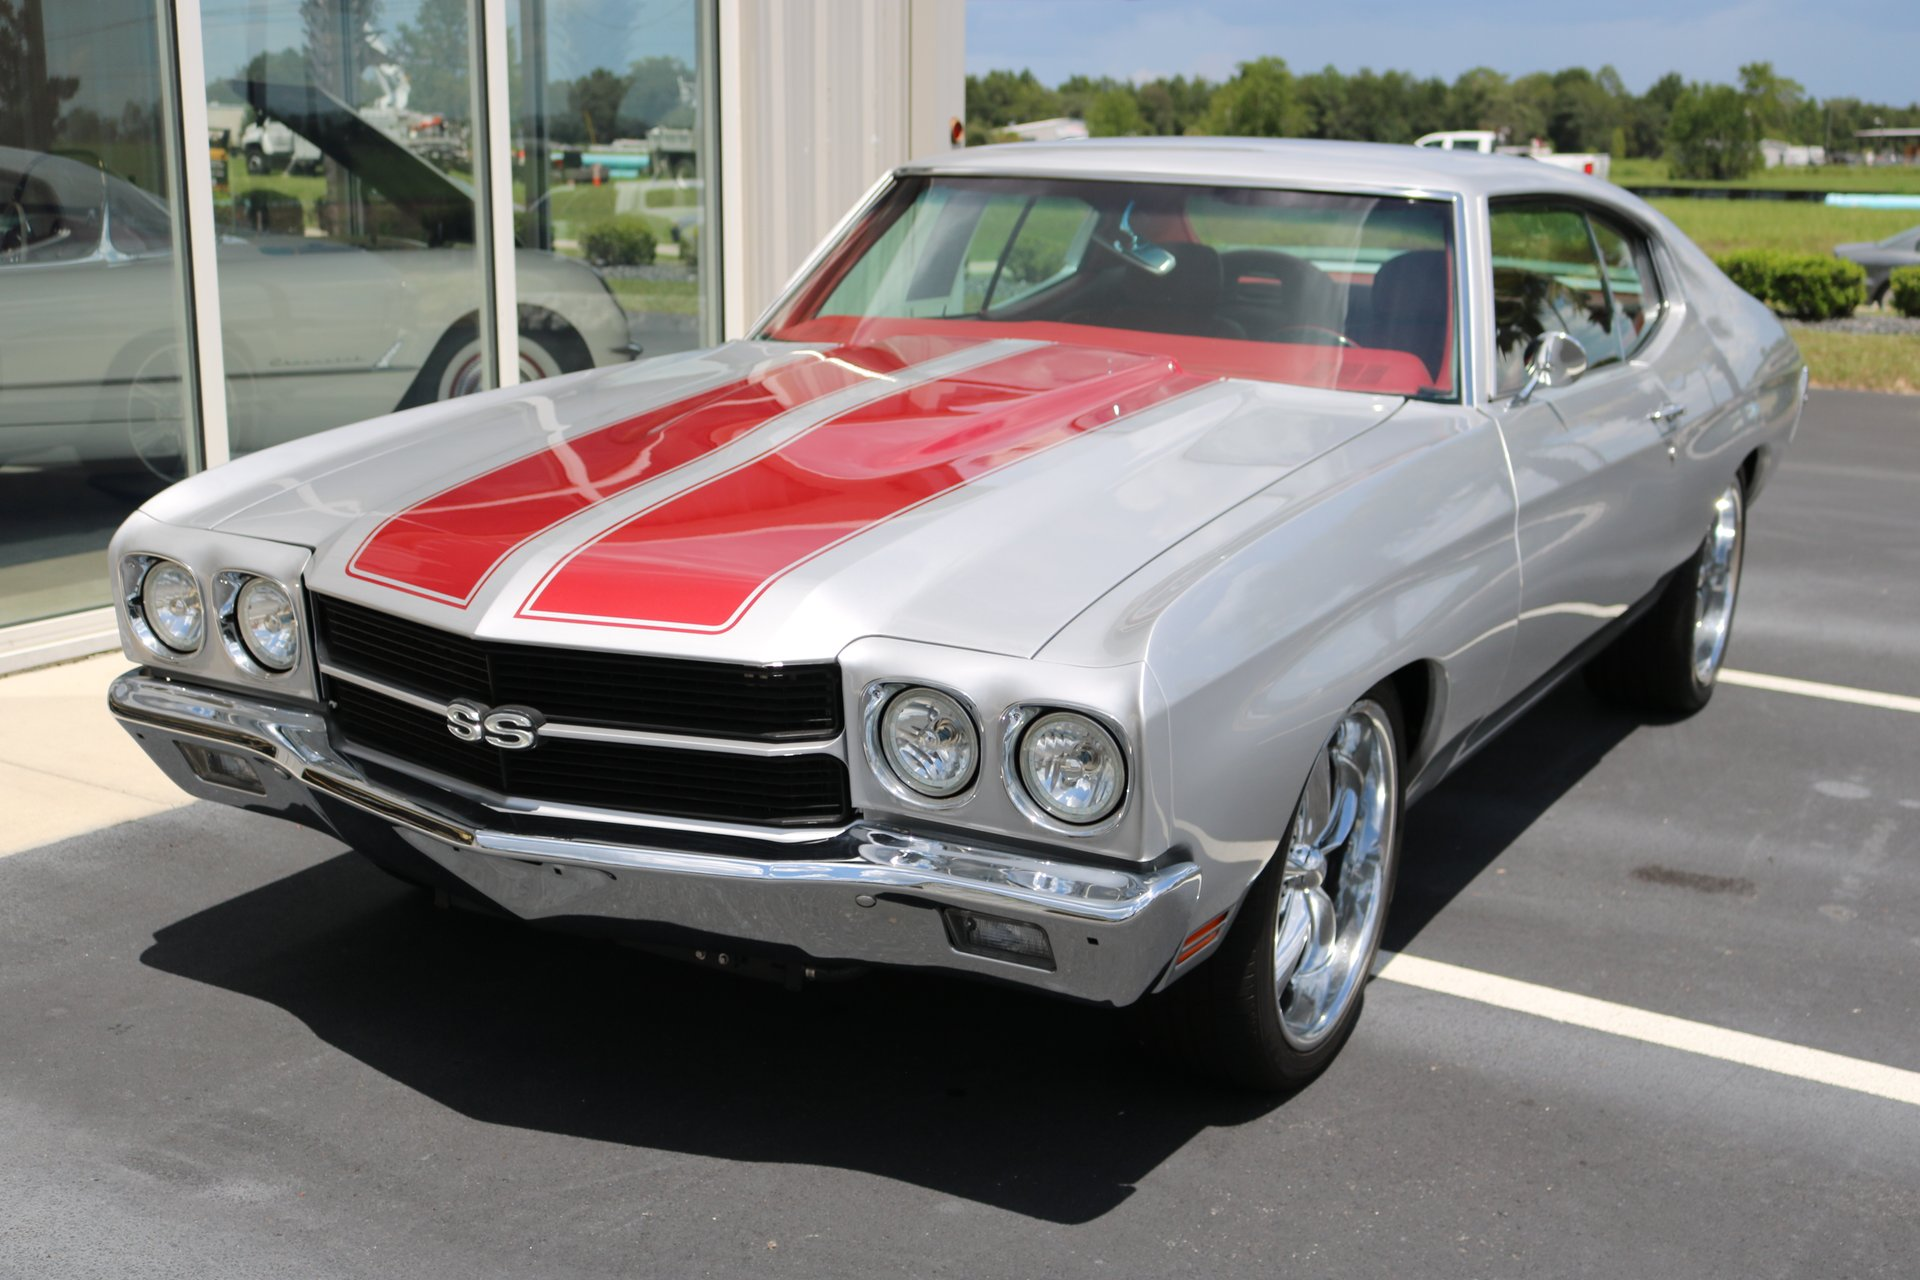 1970 chevrolet chevelle price reduced